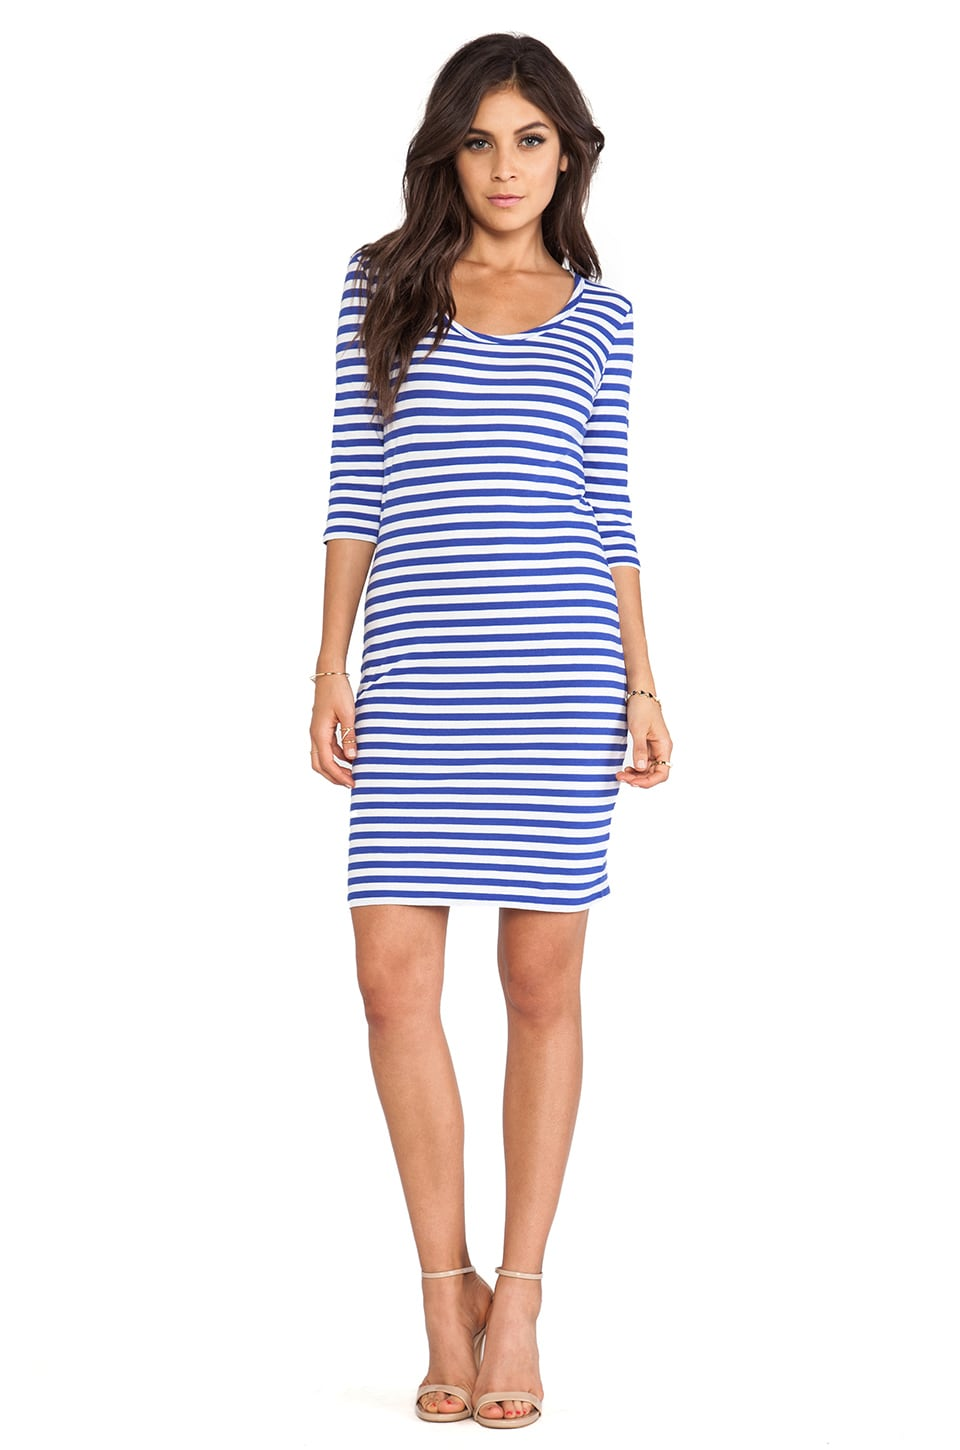 Bobi Light Weight Jersey Stripe Dress in Ultrablue & White